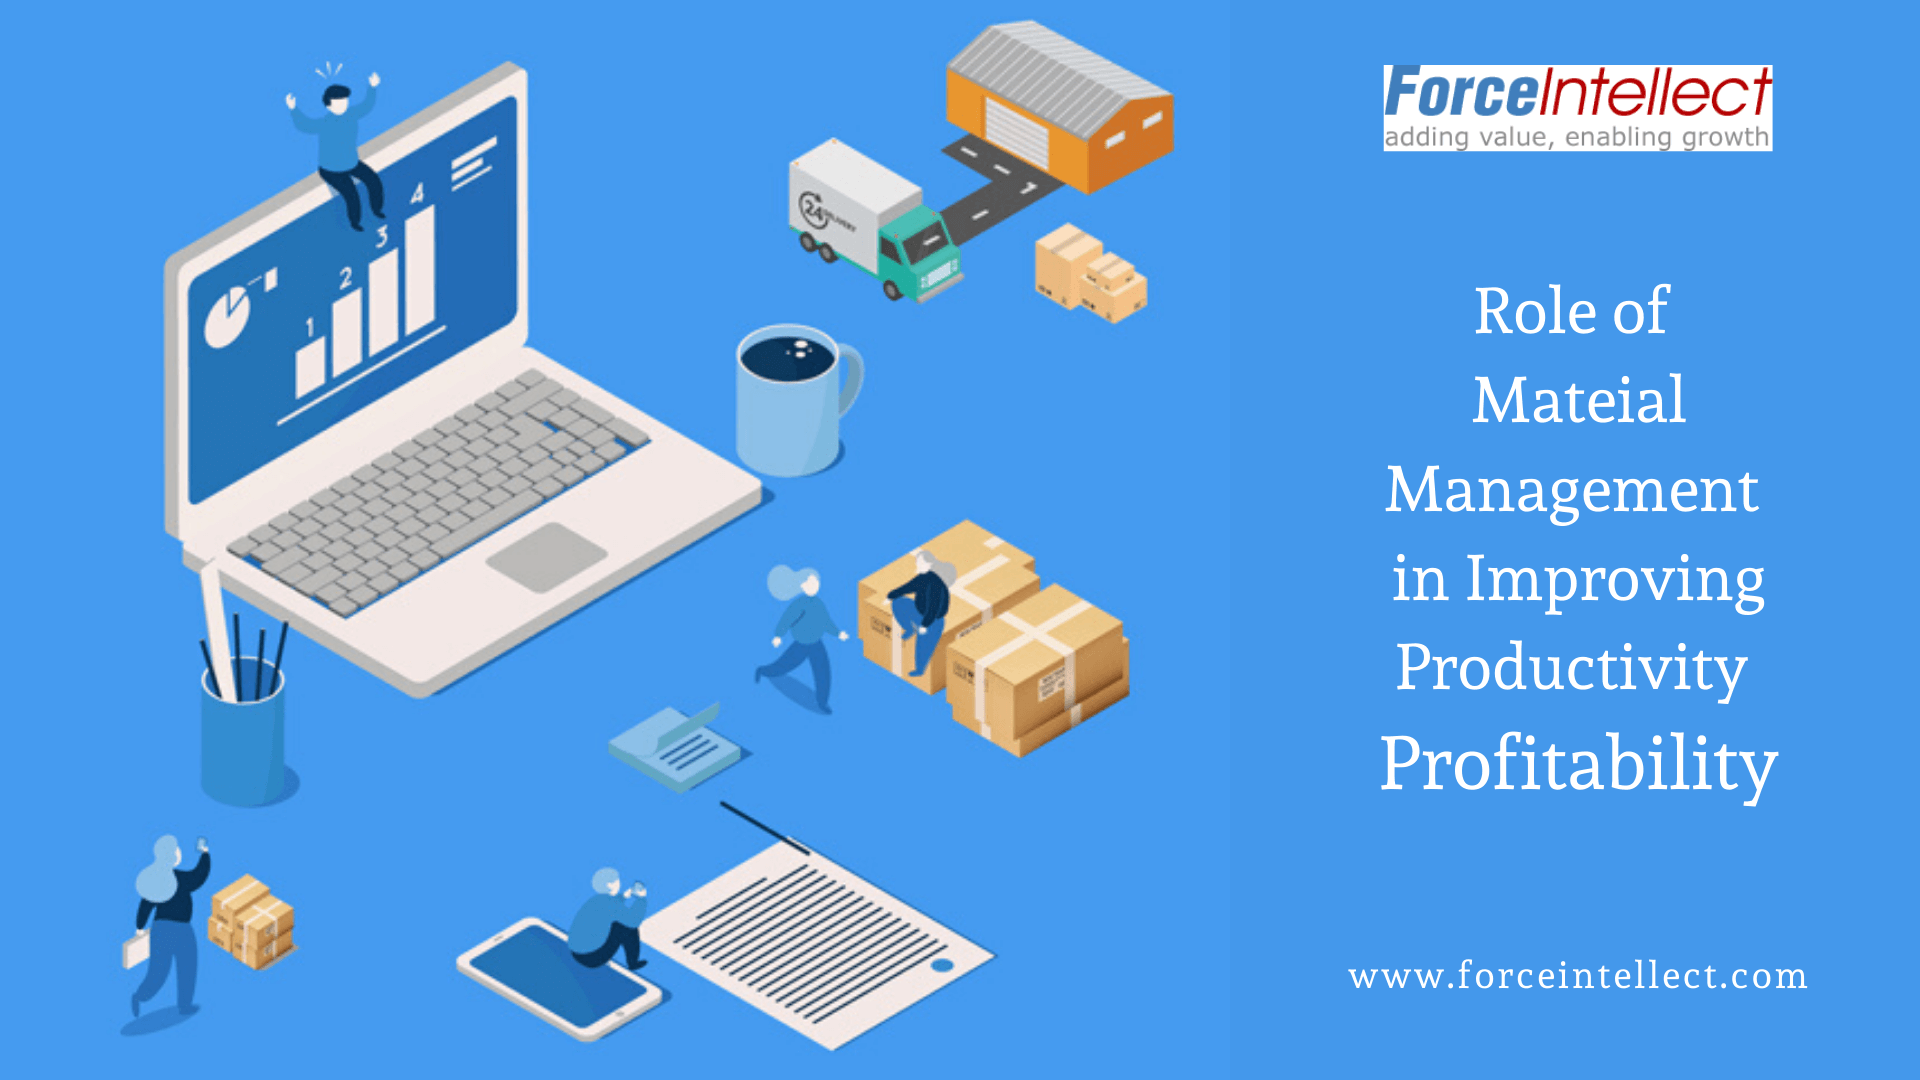 Role of Material Management in Improving Productivity Profitability